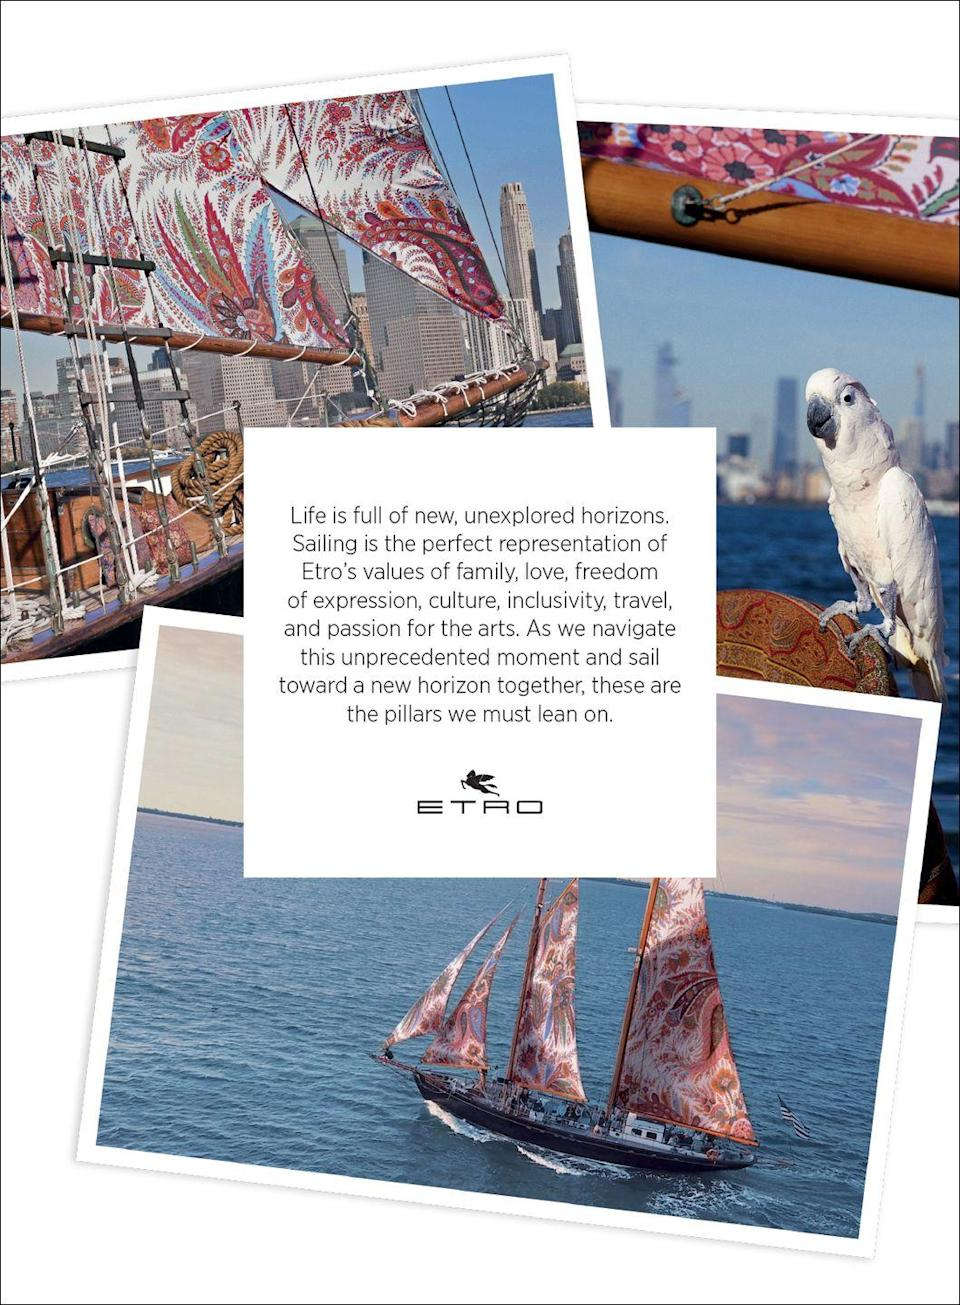 <p>Life is full of new, unexplored horizons. Sailing is the perfect representation of Etro's values of family, love, freedom of expression, culture, inclusivity, travel, and passion for the arts. As we navigate this unprecedented moment and sail toward a new horizon together, these are the pillars we must lean on.</p>